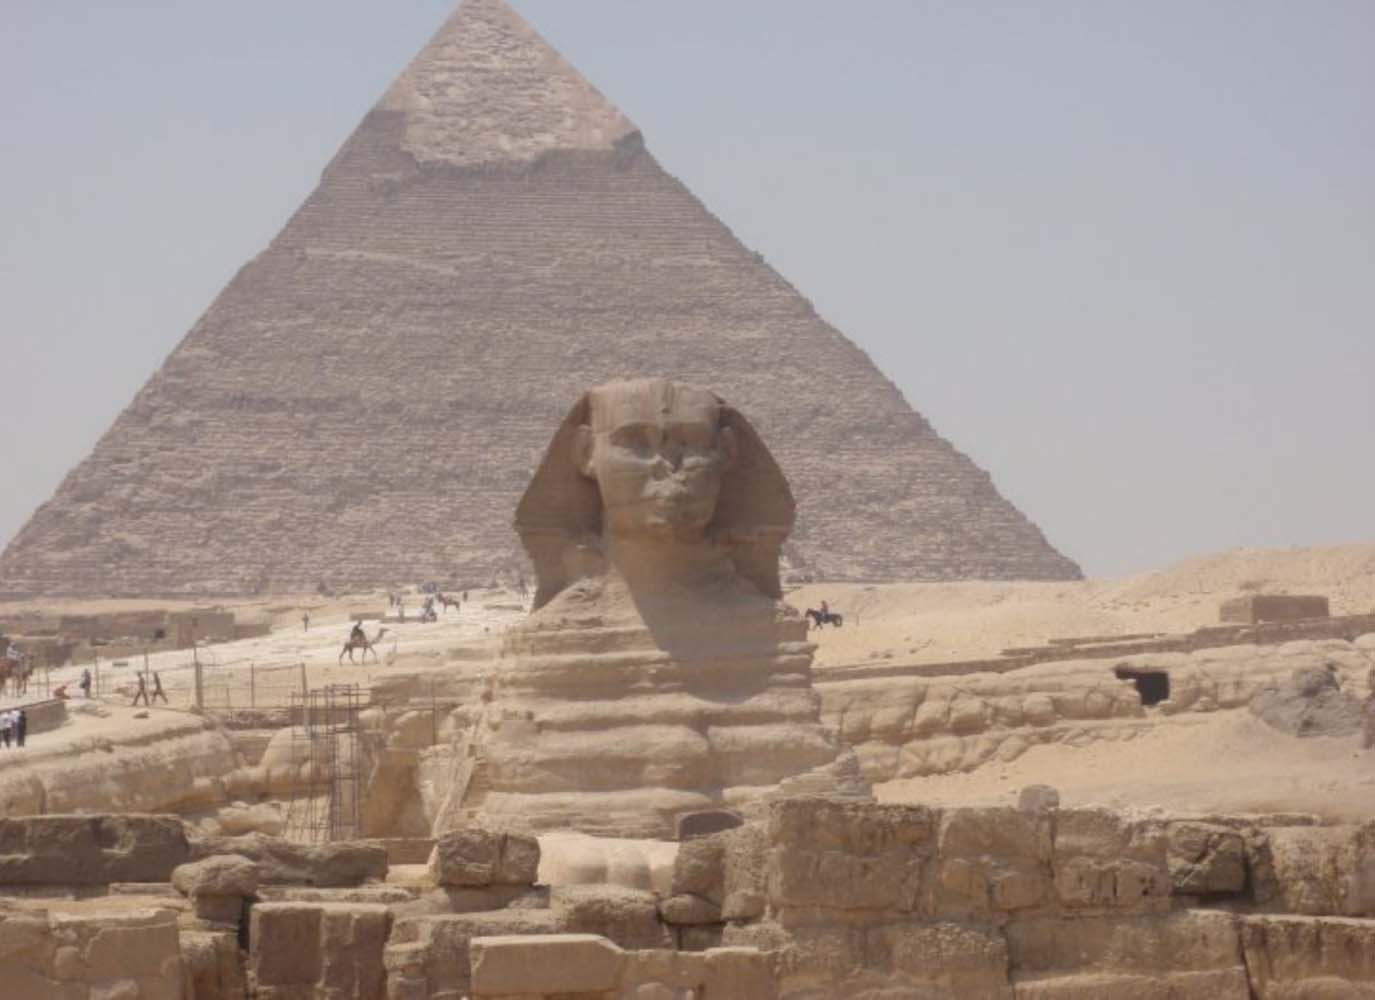 The Great Sphinx at the pyramids